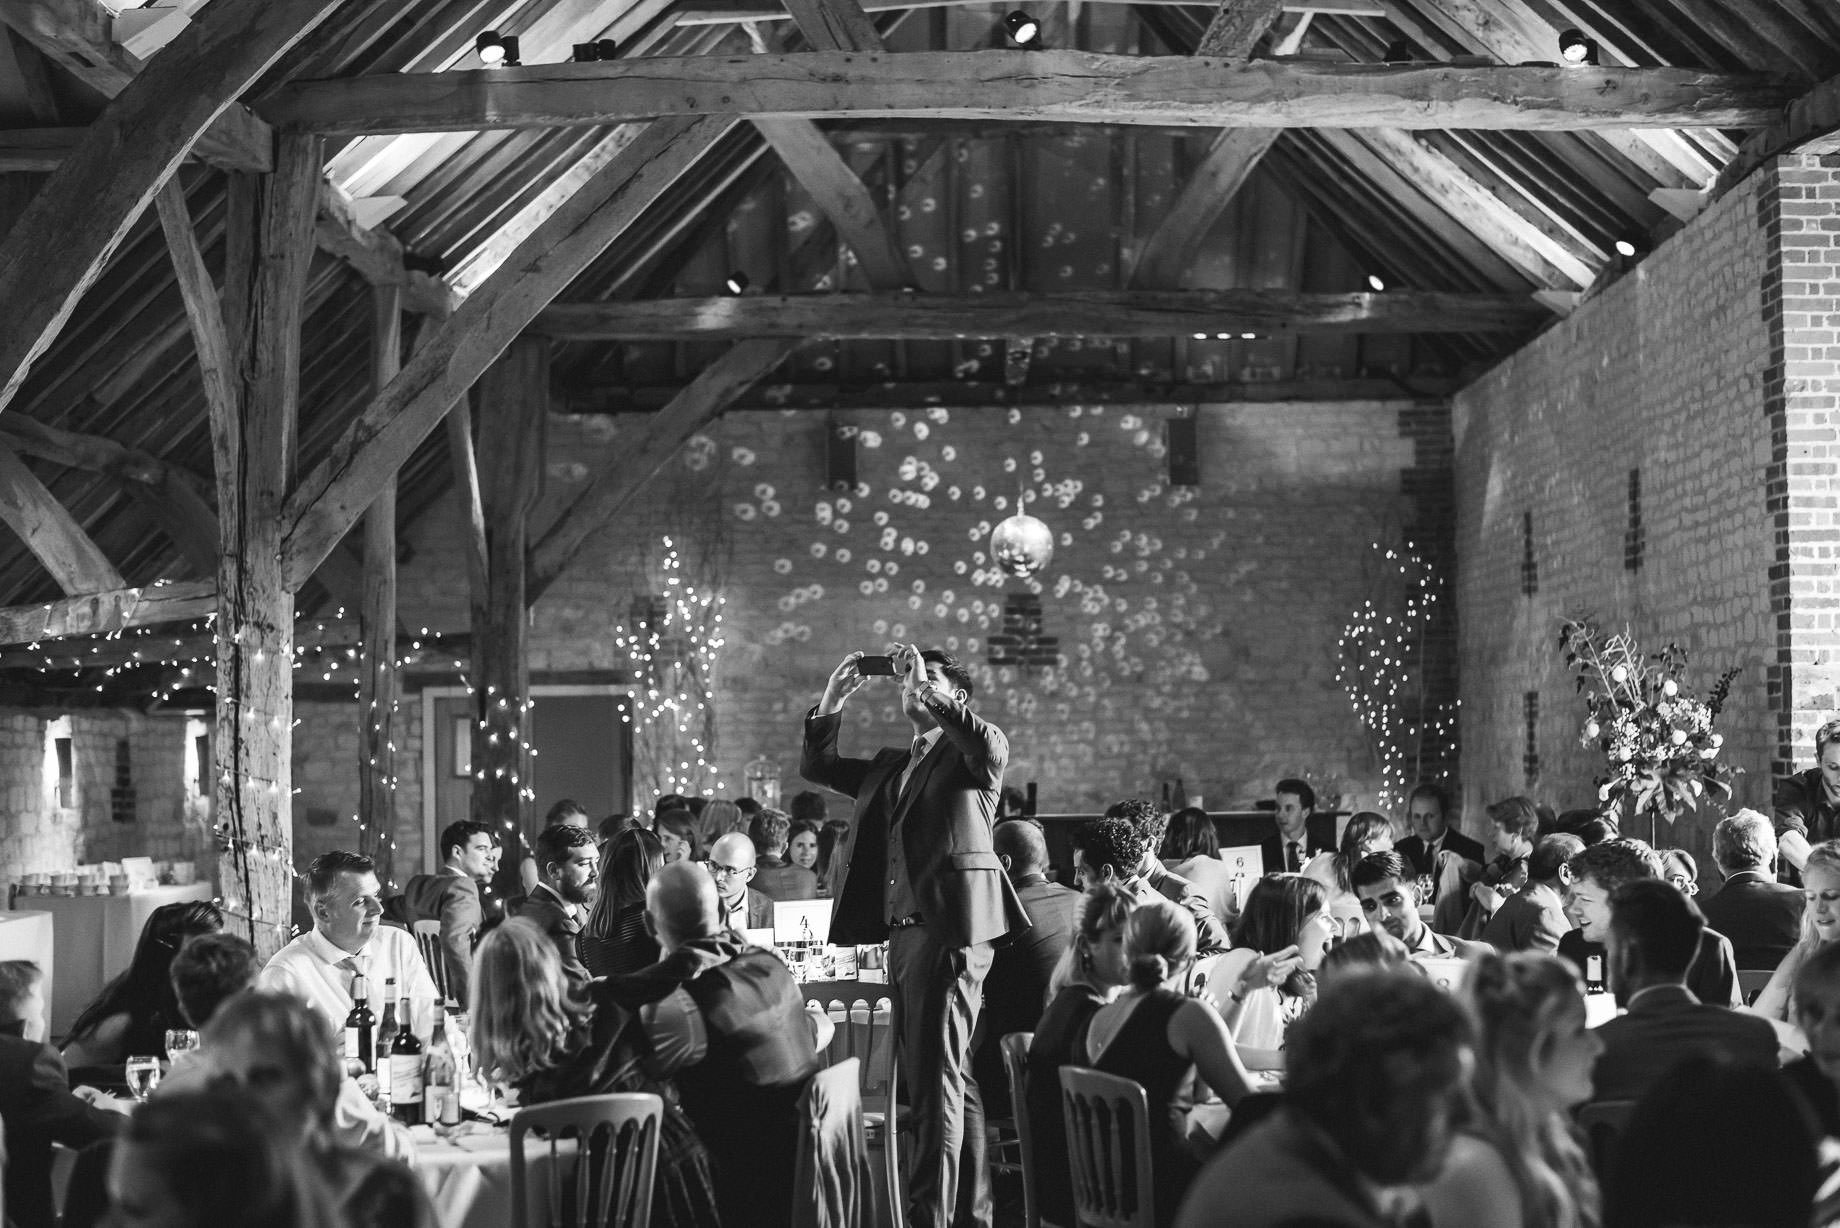 bury-court-barn-wedding-photography-guy-collier-photography-nadia-tom-139-of-184